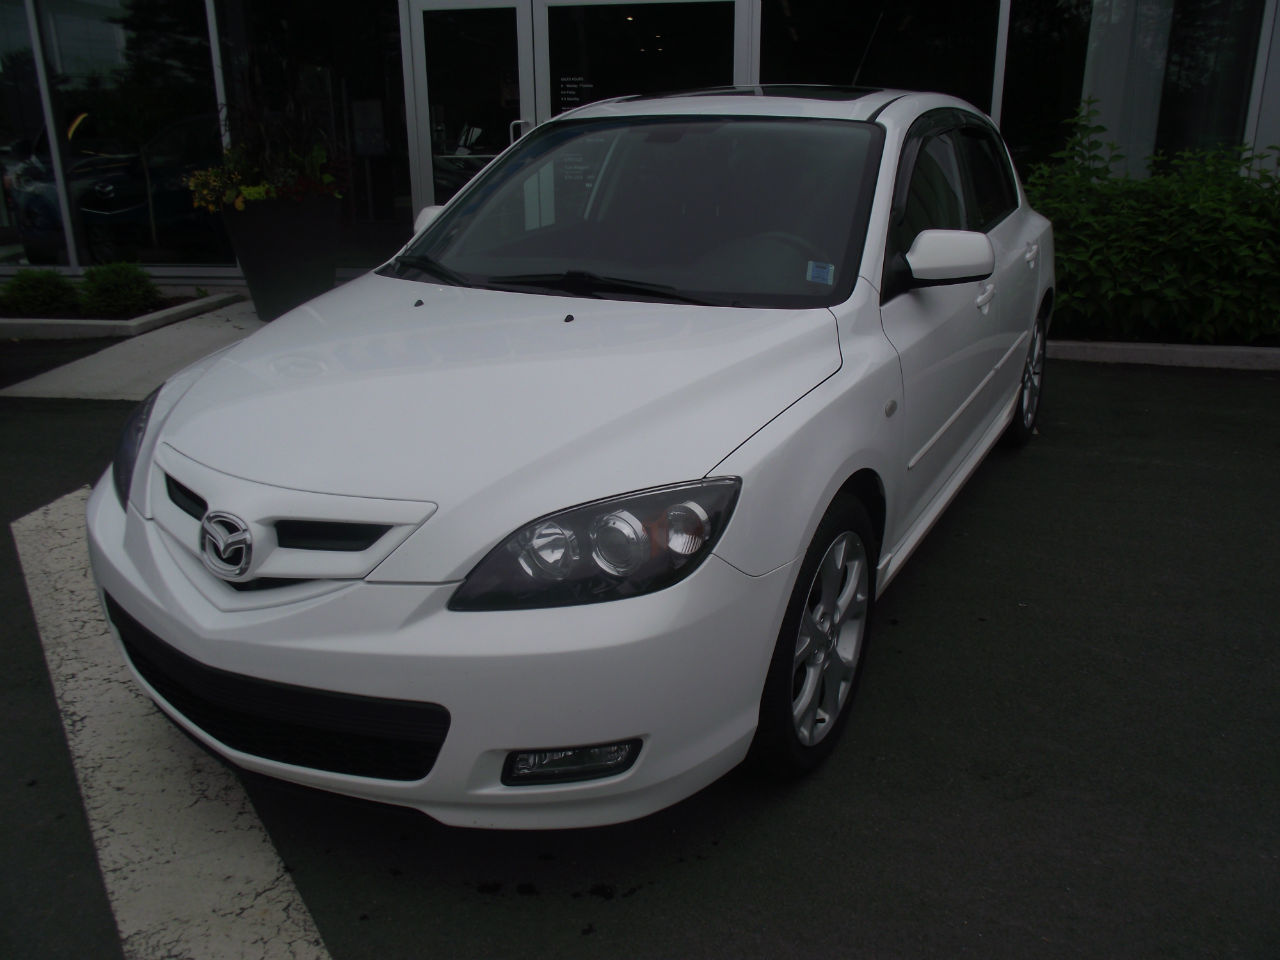 used 2008 mazda mazda3 sport in new germany used inventory lake view auto in new germany. Black Bedroom Furniture Sets. Home Design Ideas